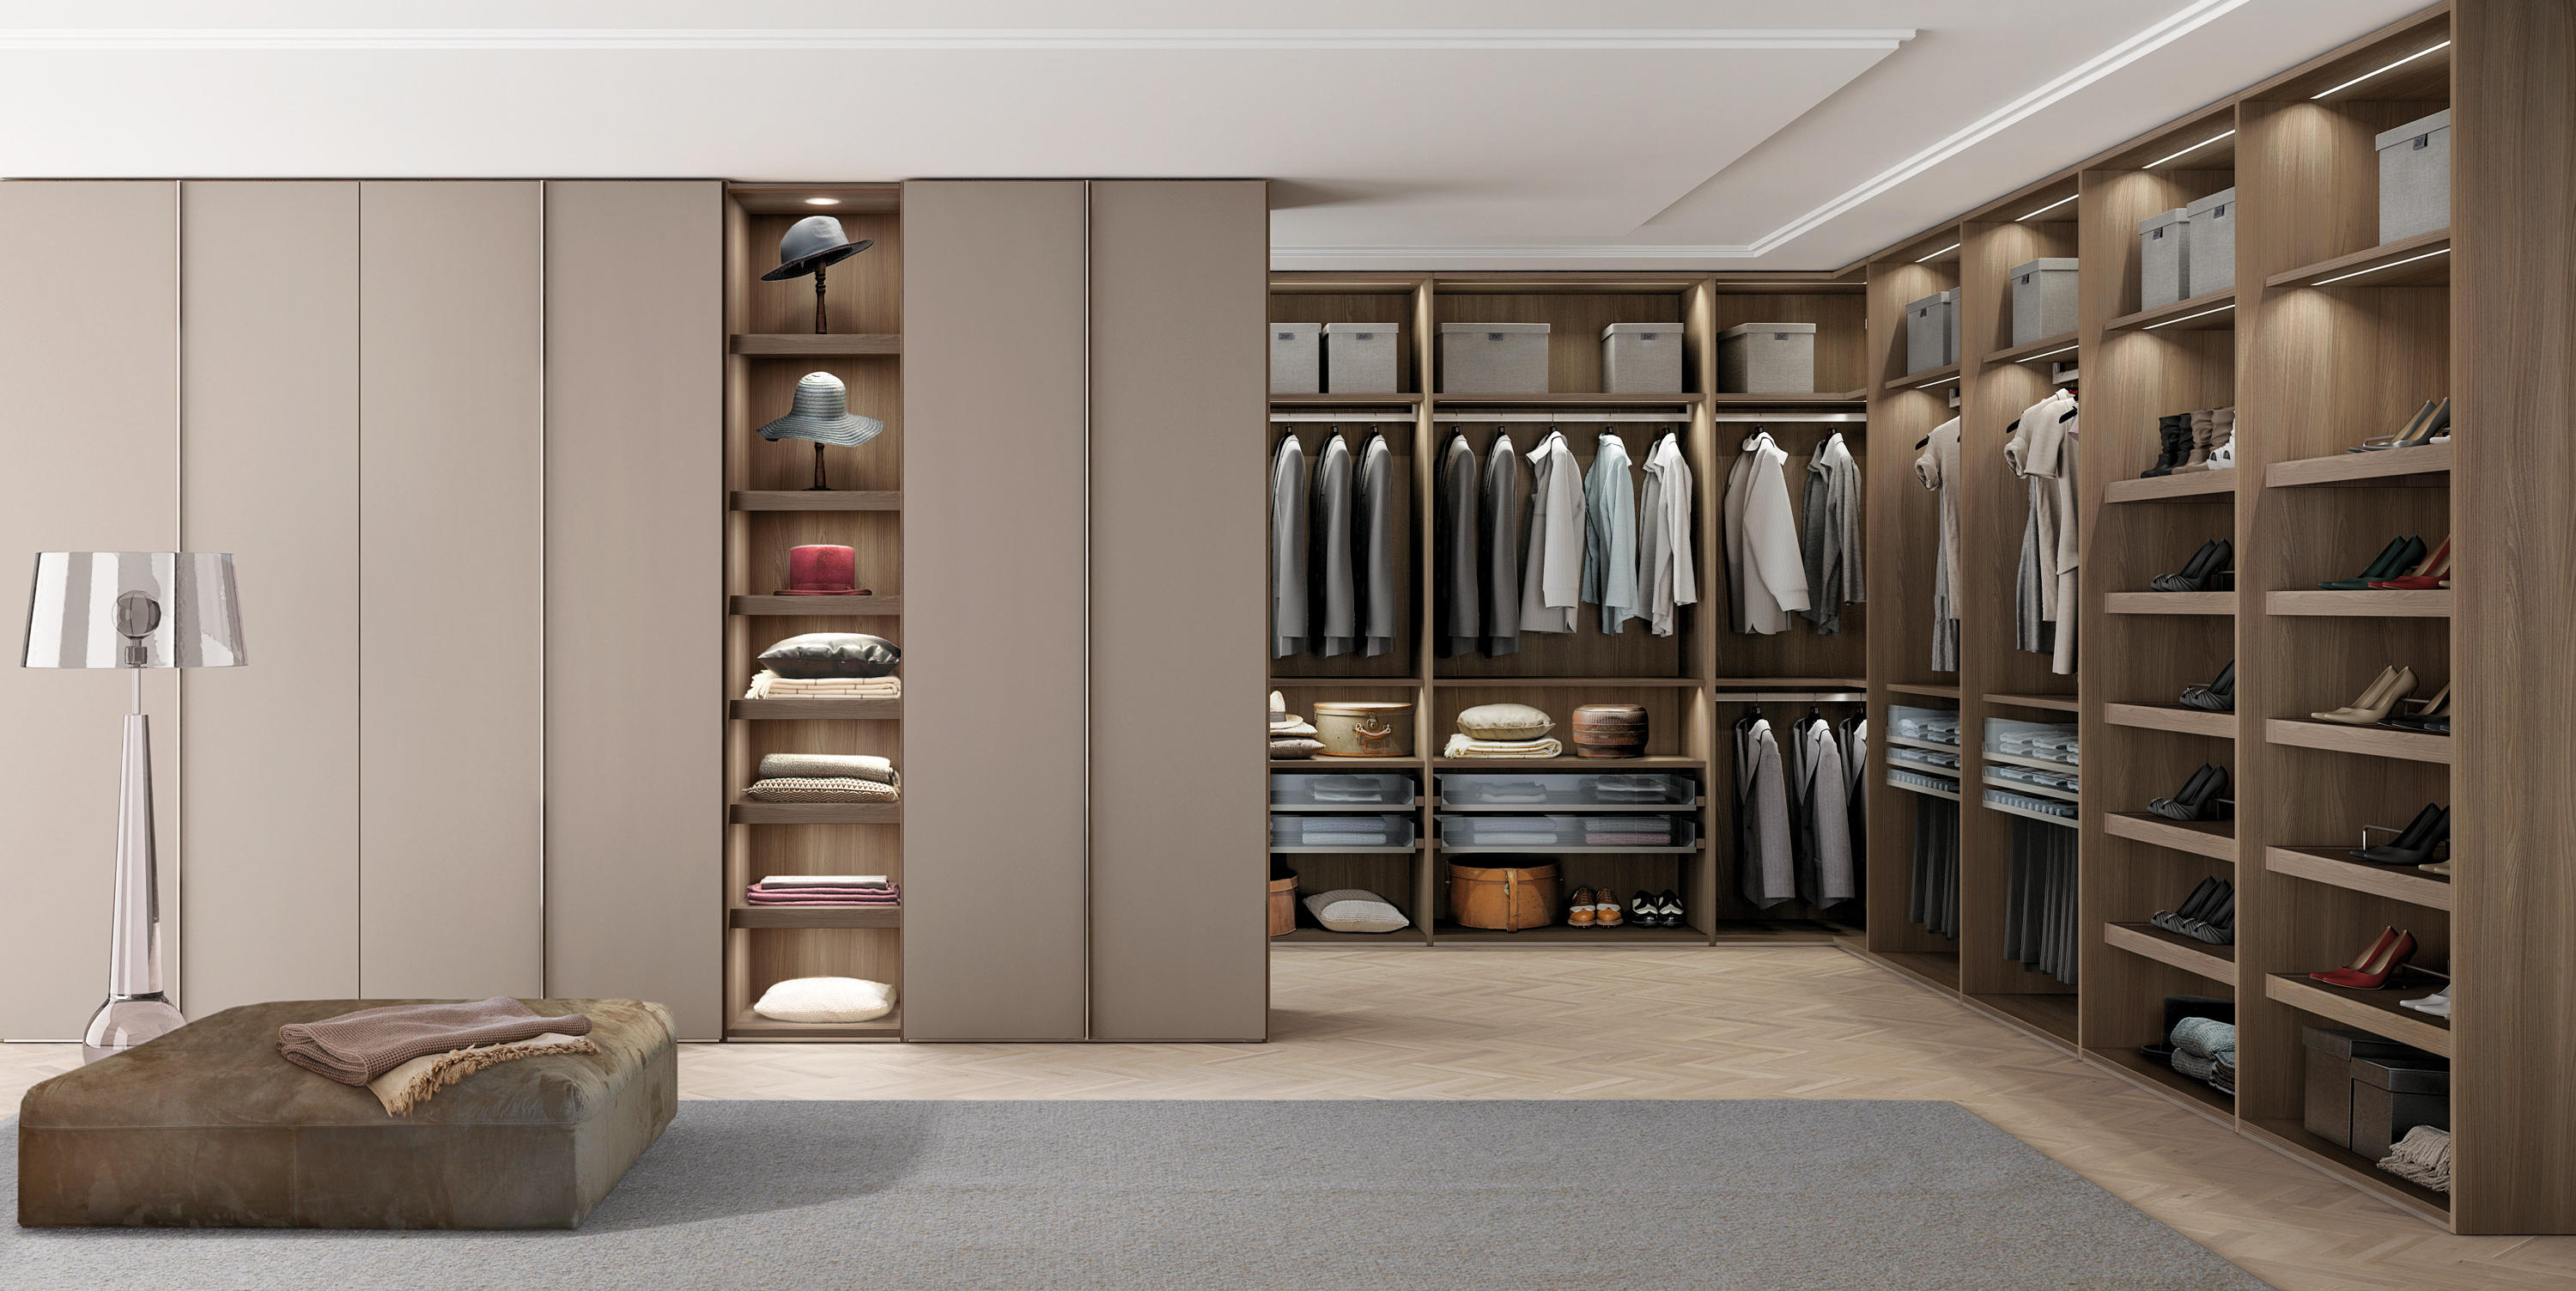 Z595 Combi System Walk In Wardrobes From Zalf Architonic